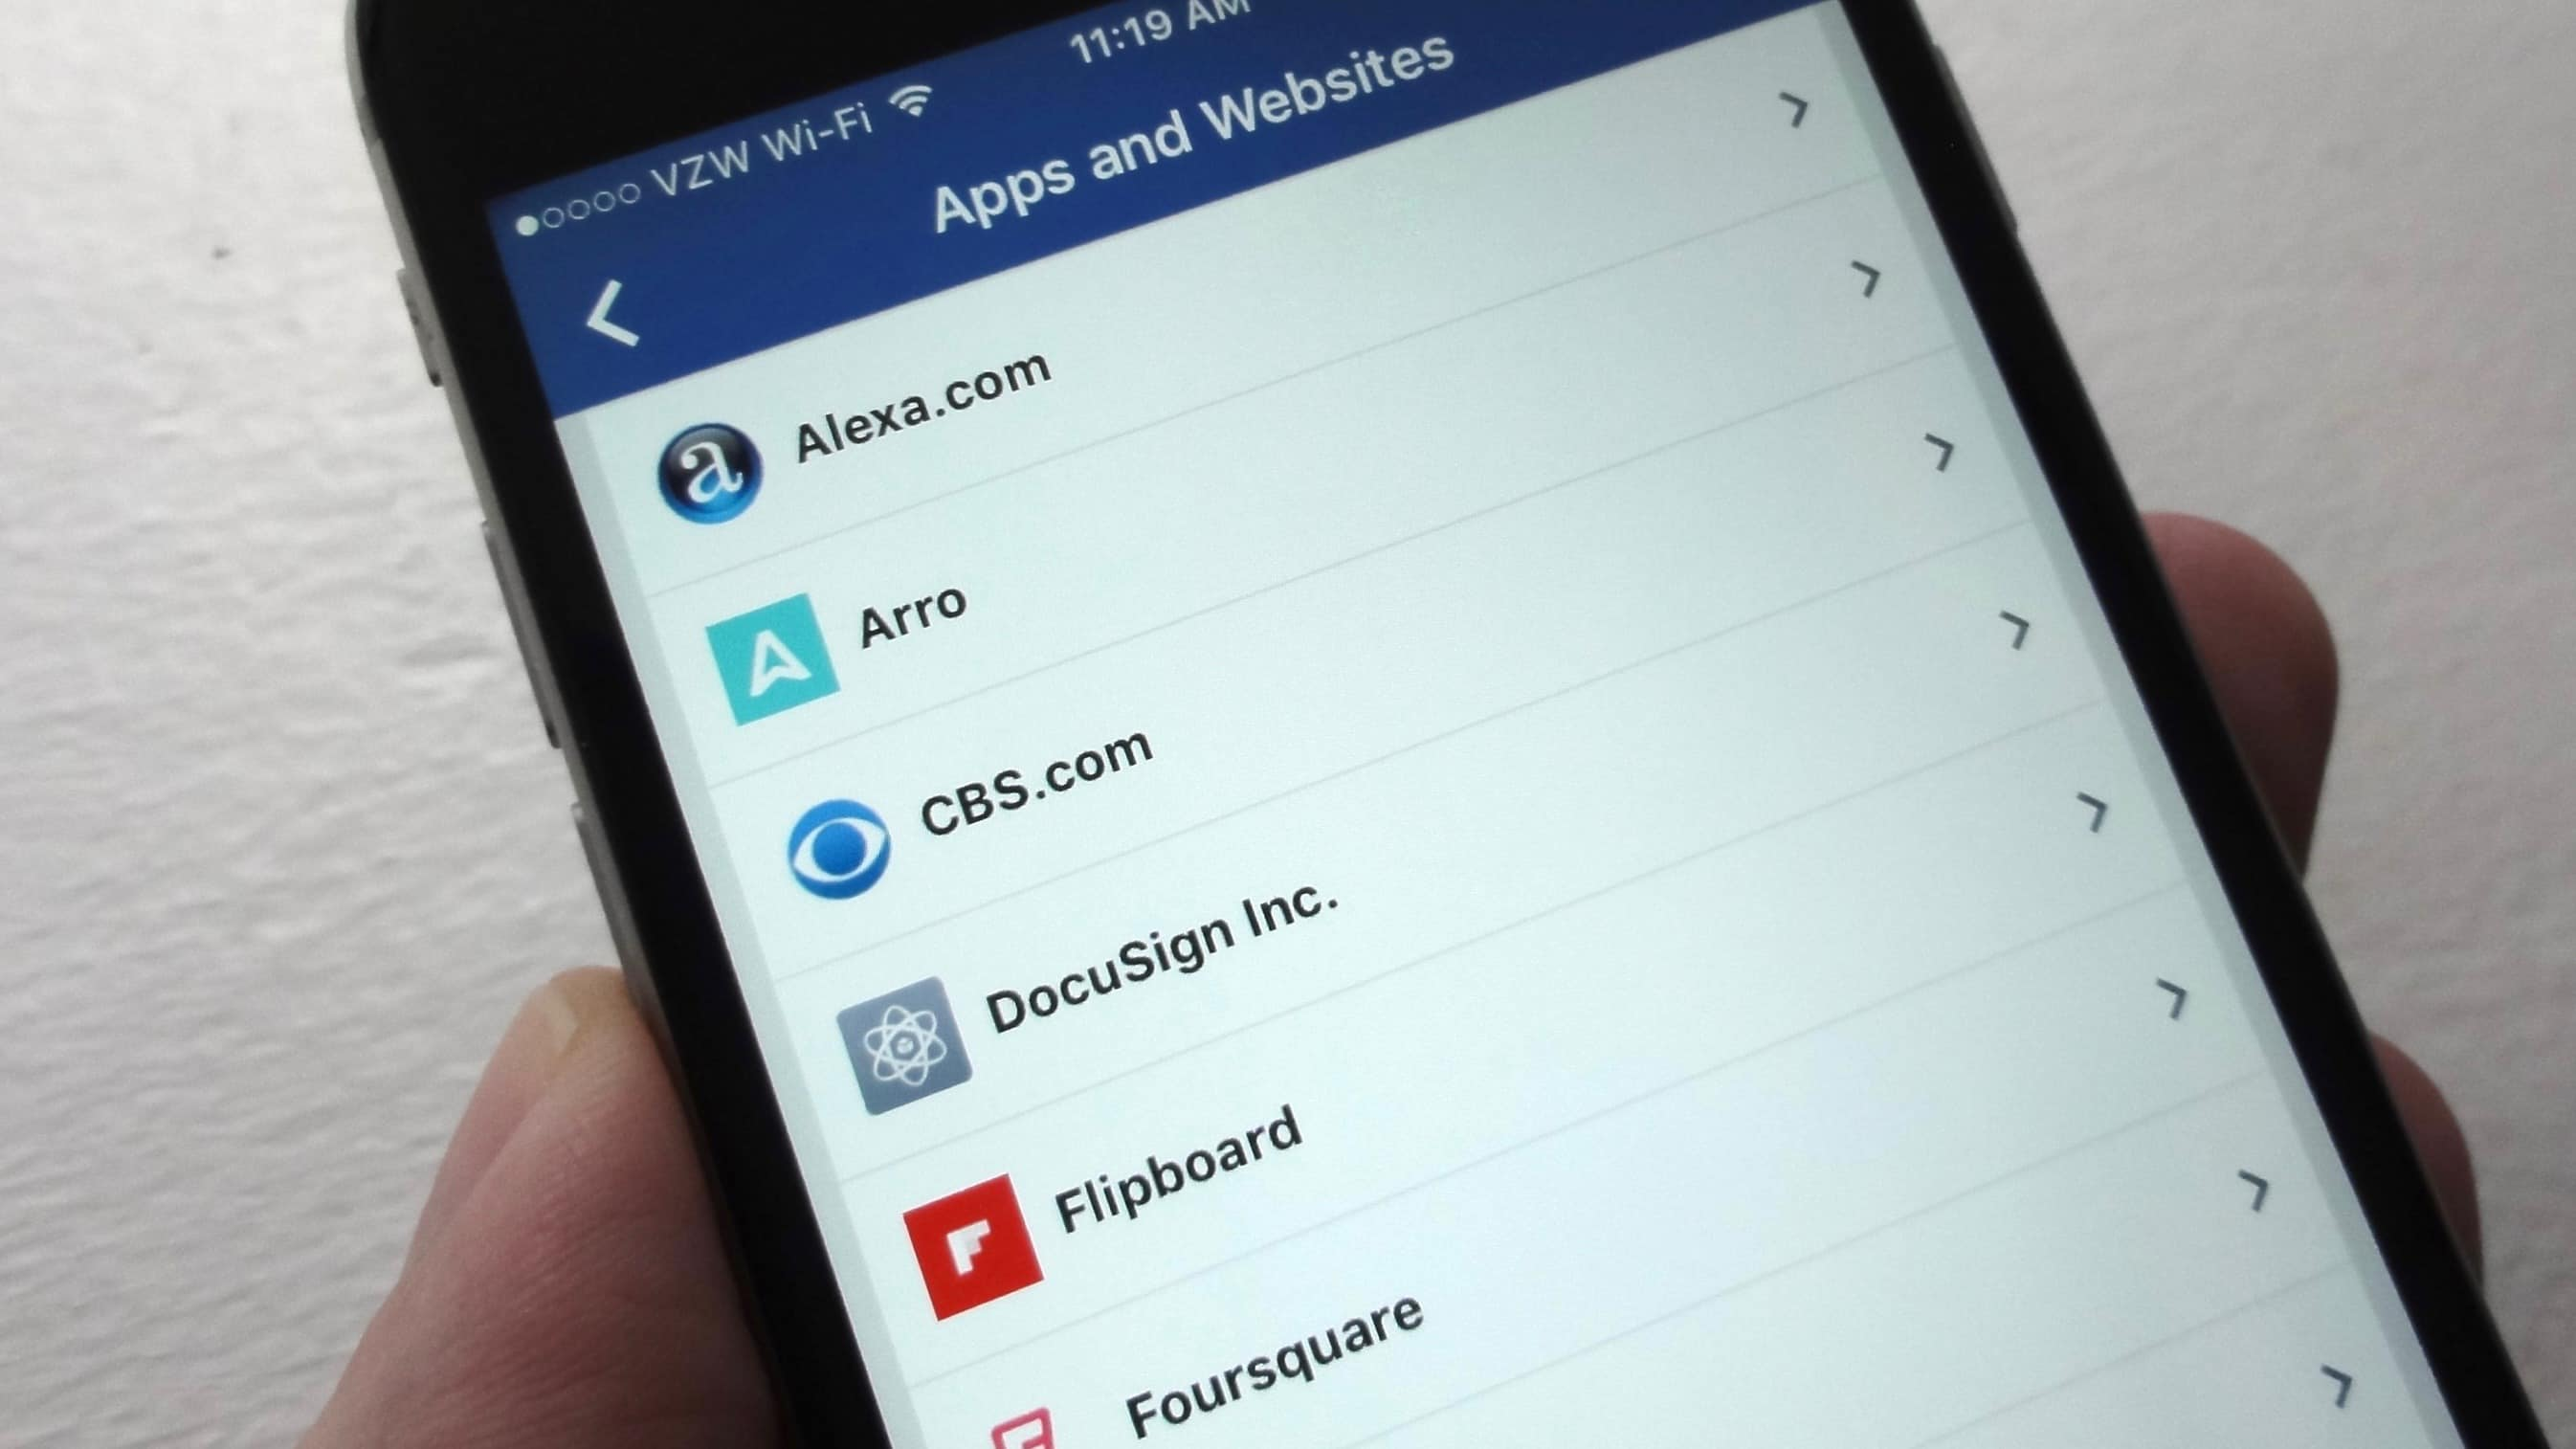 Facebook tip: Remove all your Facebook apps in one fell swoop